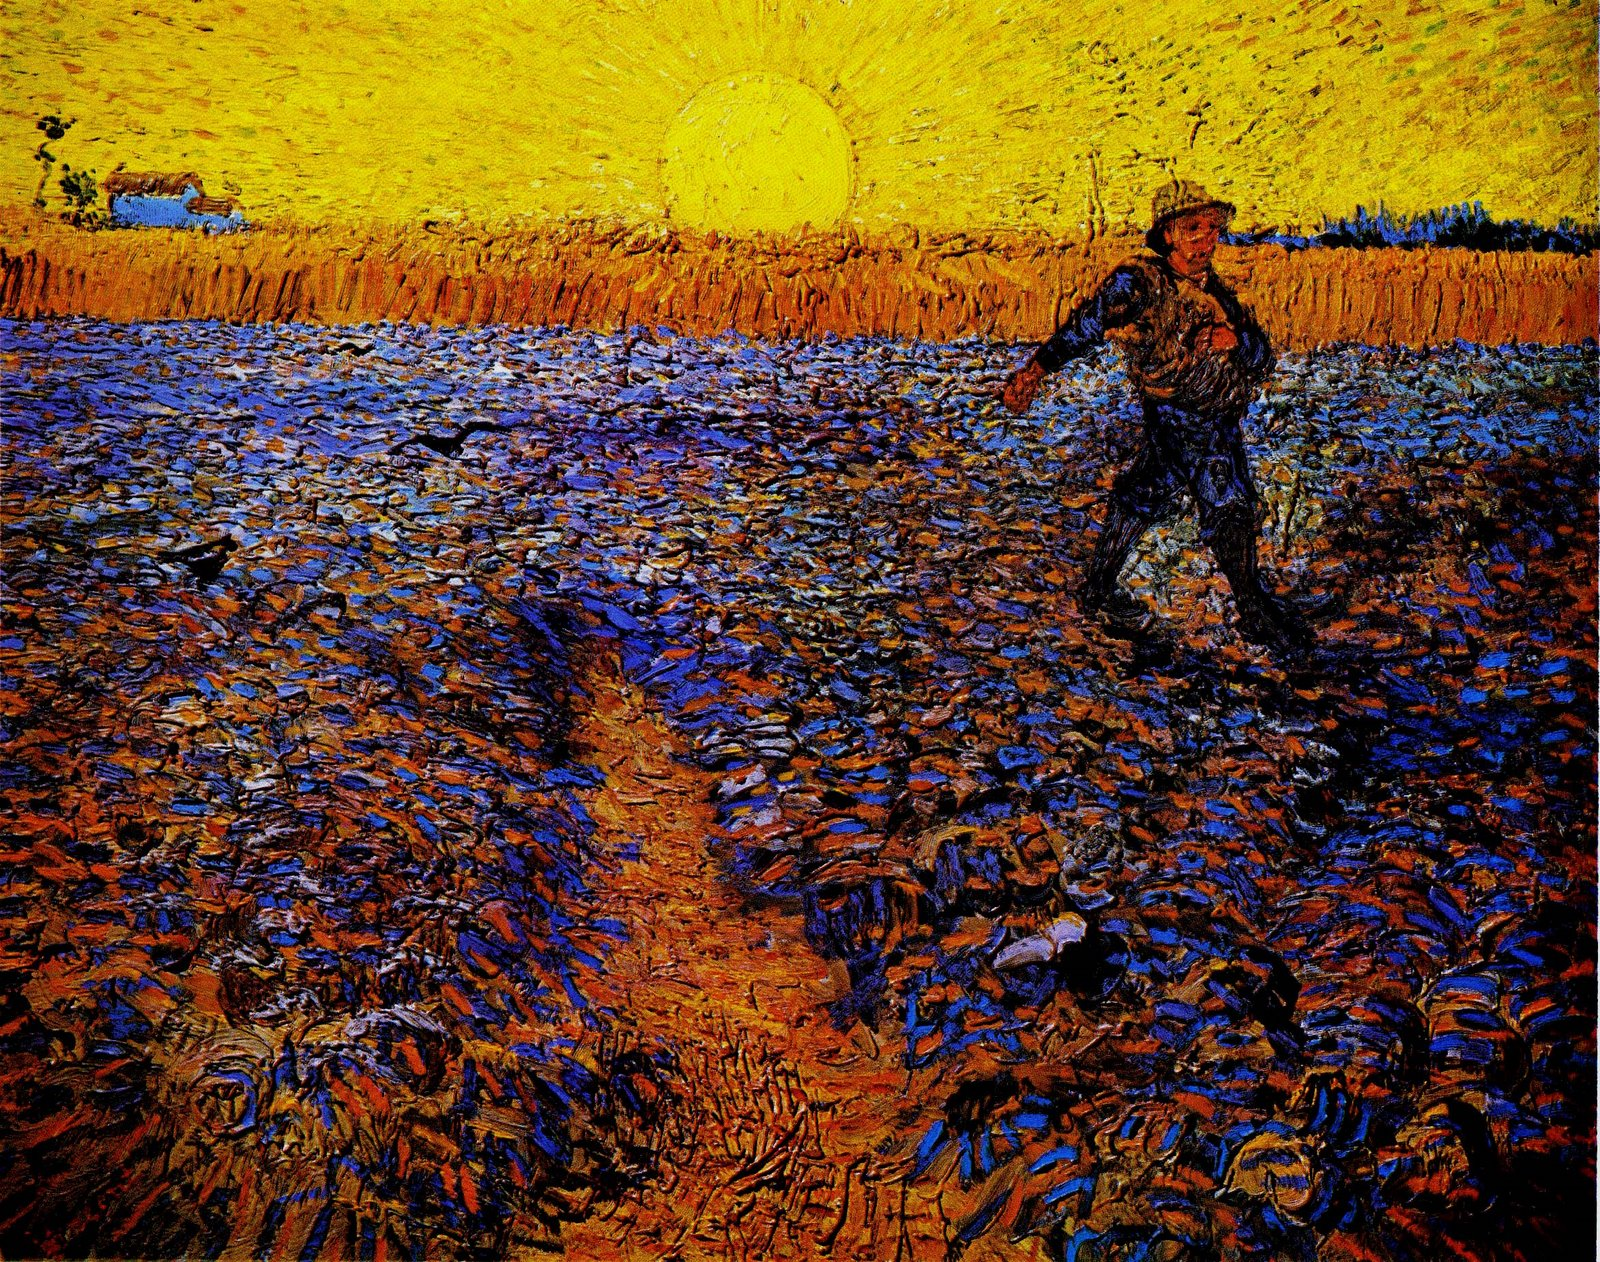 van-gogh-the-sower